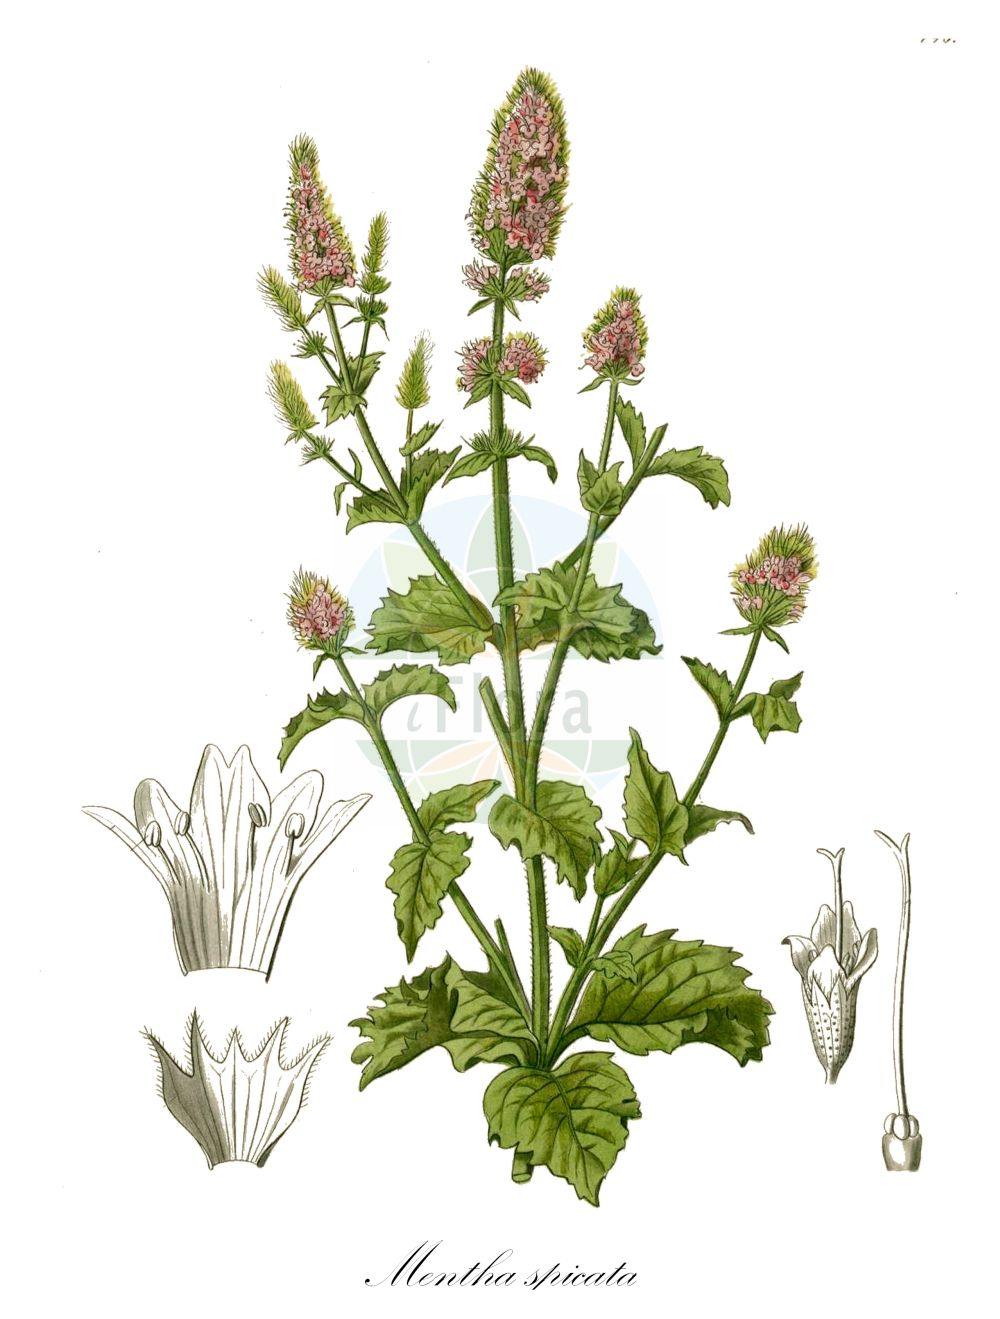 Historische Abbildung von Mentha spicata (Ähren-Minze - Spear Mint). Das Bild zeigt Blatt, Bluete, Frucht und Same. ---- Historical Drawing of Mentha spicata (Ähren-Minze - Spear Mint).The image is showing leaf, flower, fruit and seed.(Mentha spicata,Ähren-Minze,Spear Mint,Round-leaved Mint,Mentha,Minze,Mint,Lamiaceae,Lippenbluetengewaechse;Lippenbluetler,Nettle family,Blatt,Bluete,Frucht,Same,leaf,flower,fruit,seed,Kohl (1891-1895))